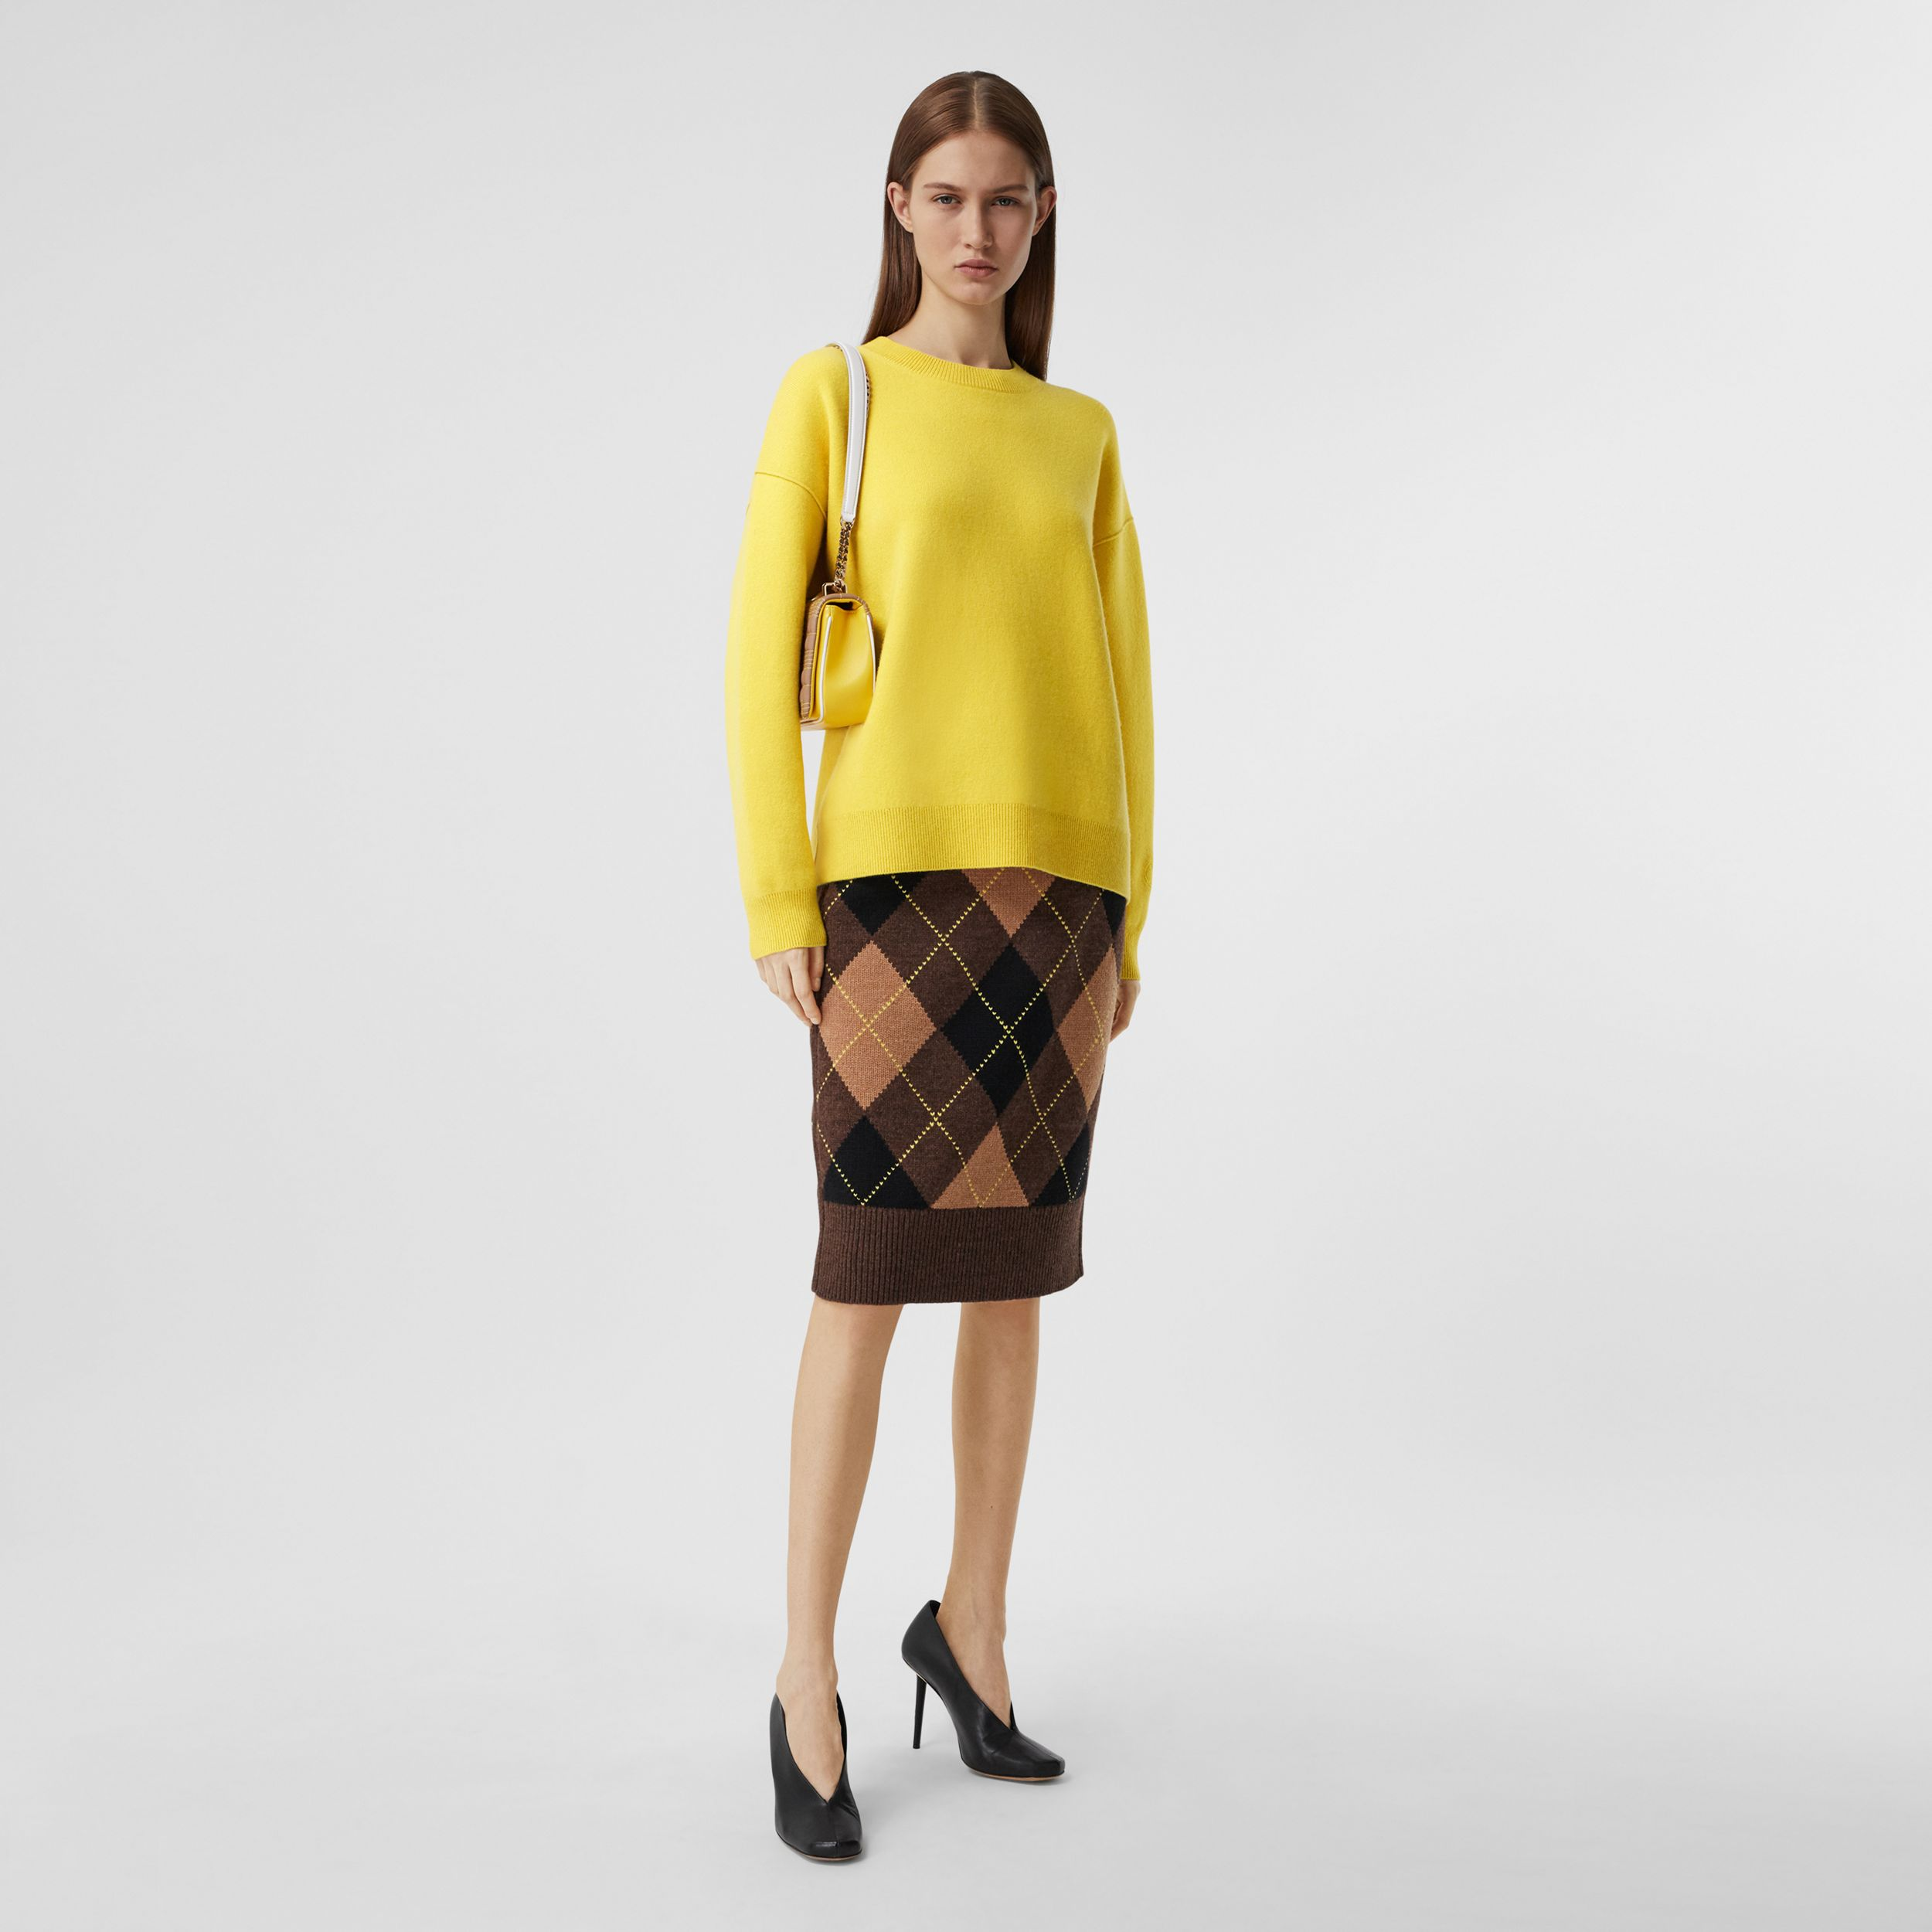 Monogram Motif Cashmere Blend Sweater in Bright Yellow - Women | Burberry - 1